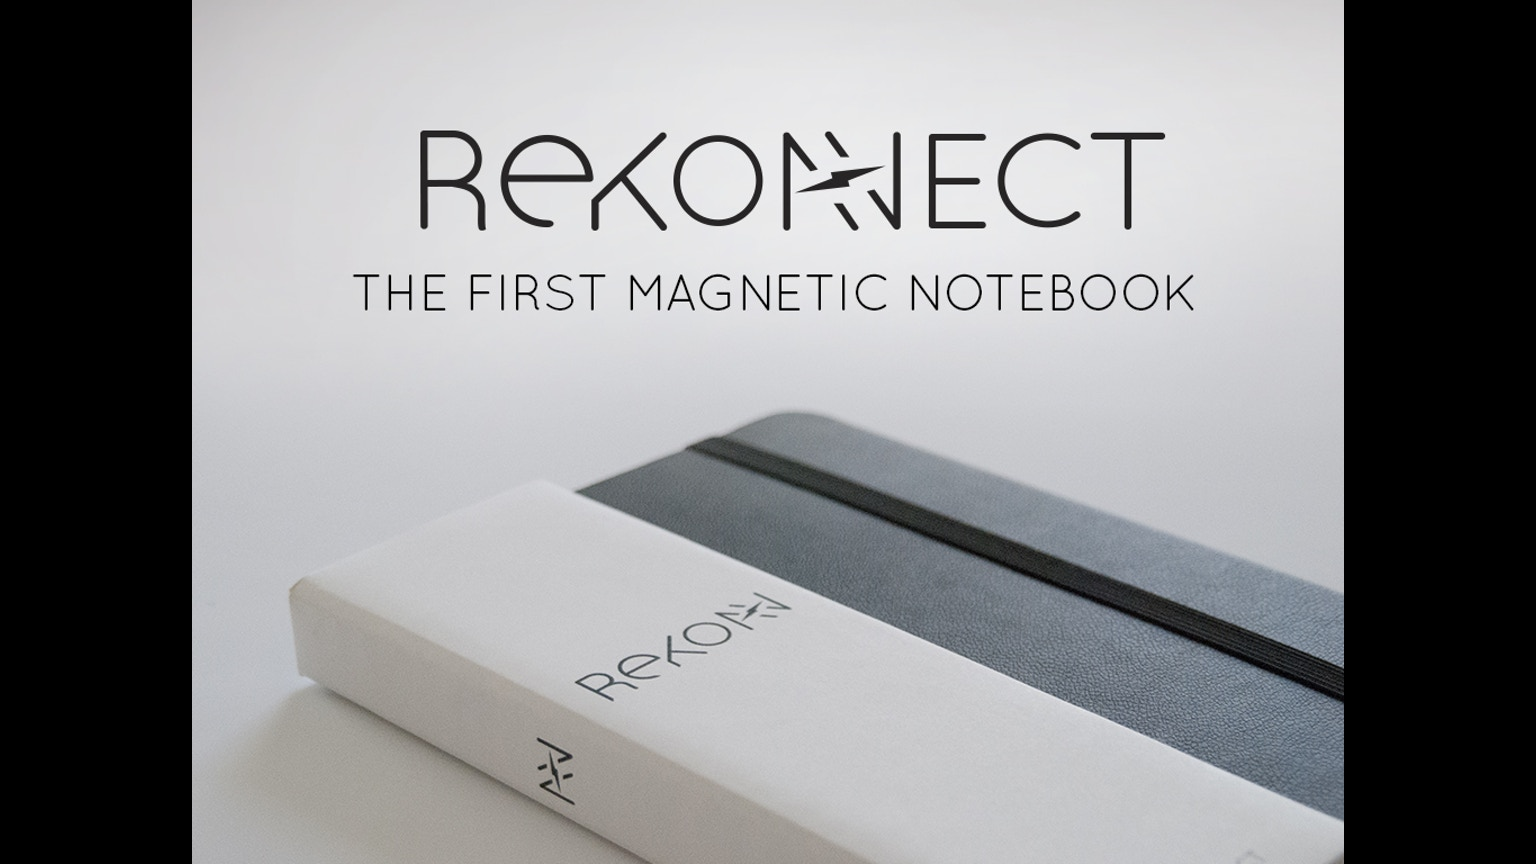 Rekonect Notebook The Magnetic Lifestyle By Cj Good Man